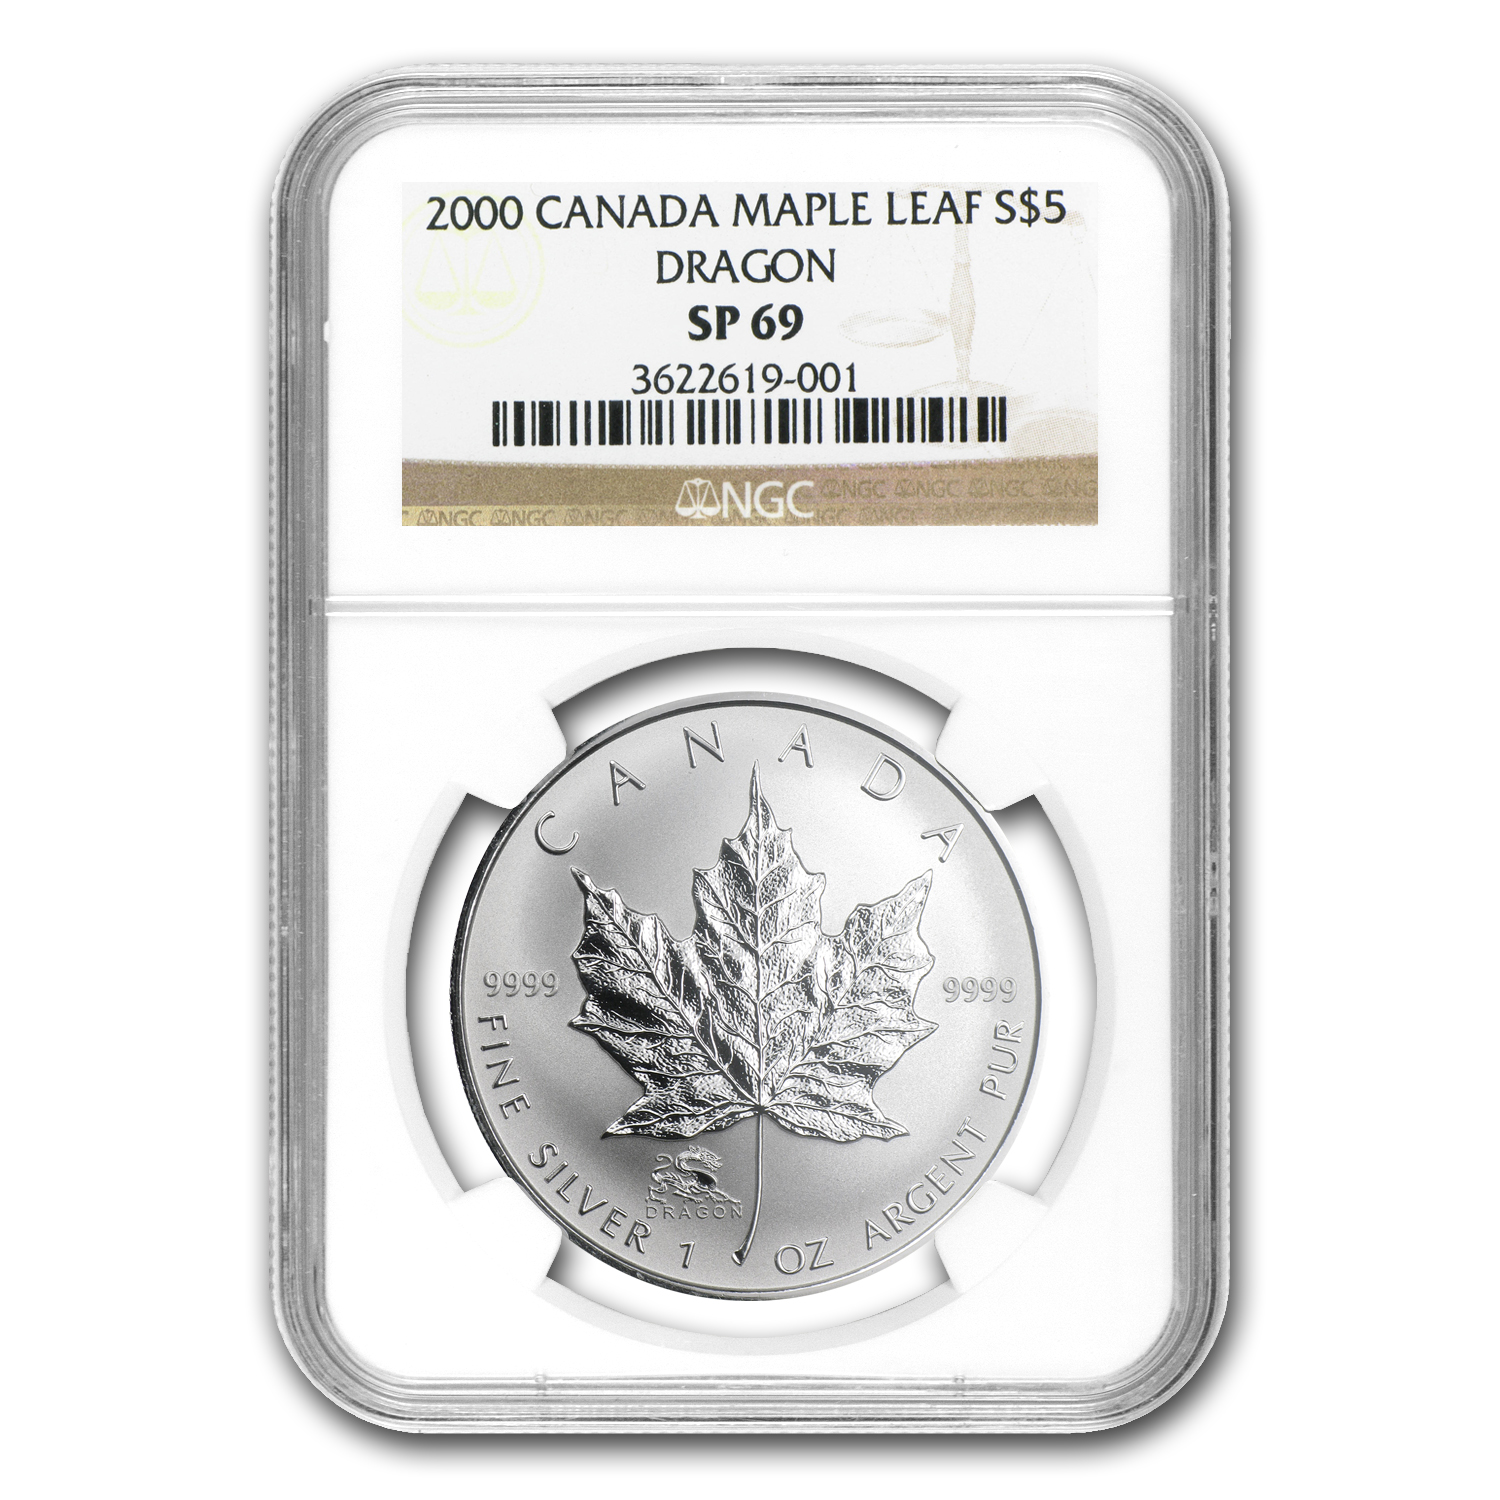 2000 1 oz Silver Canadian Maple Leaf Dragon Privy - SP-69 NGC